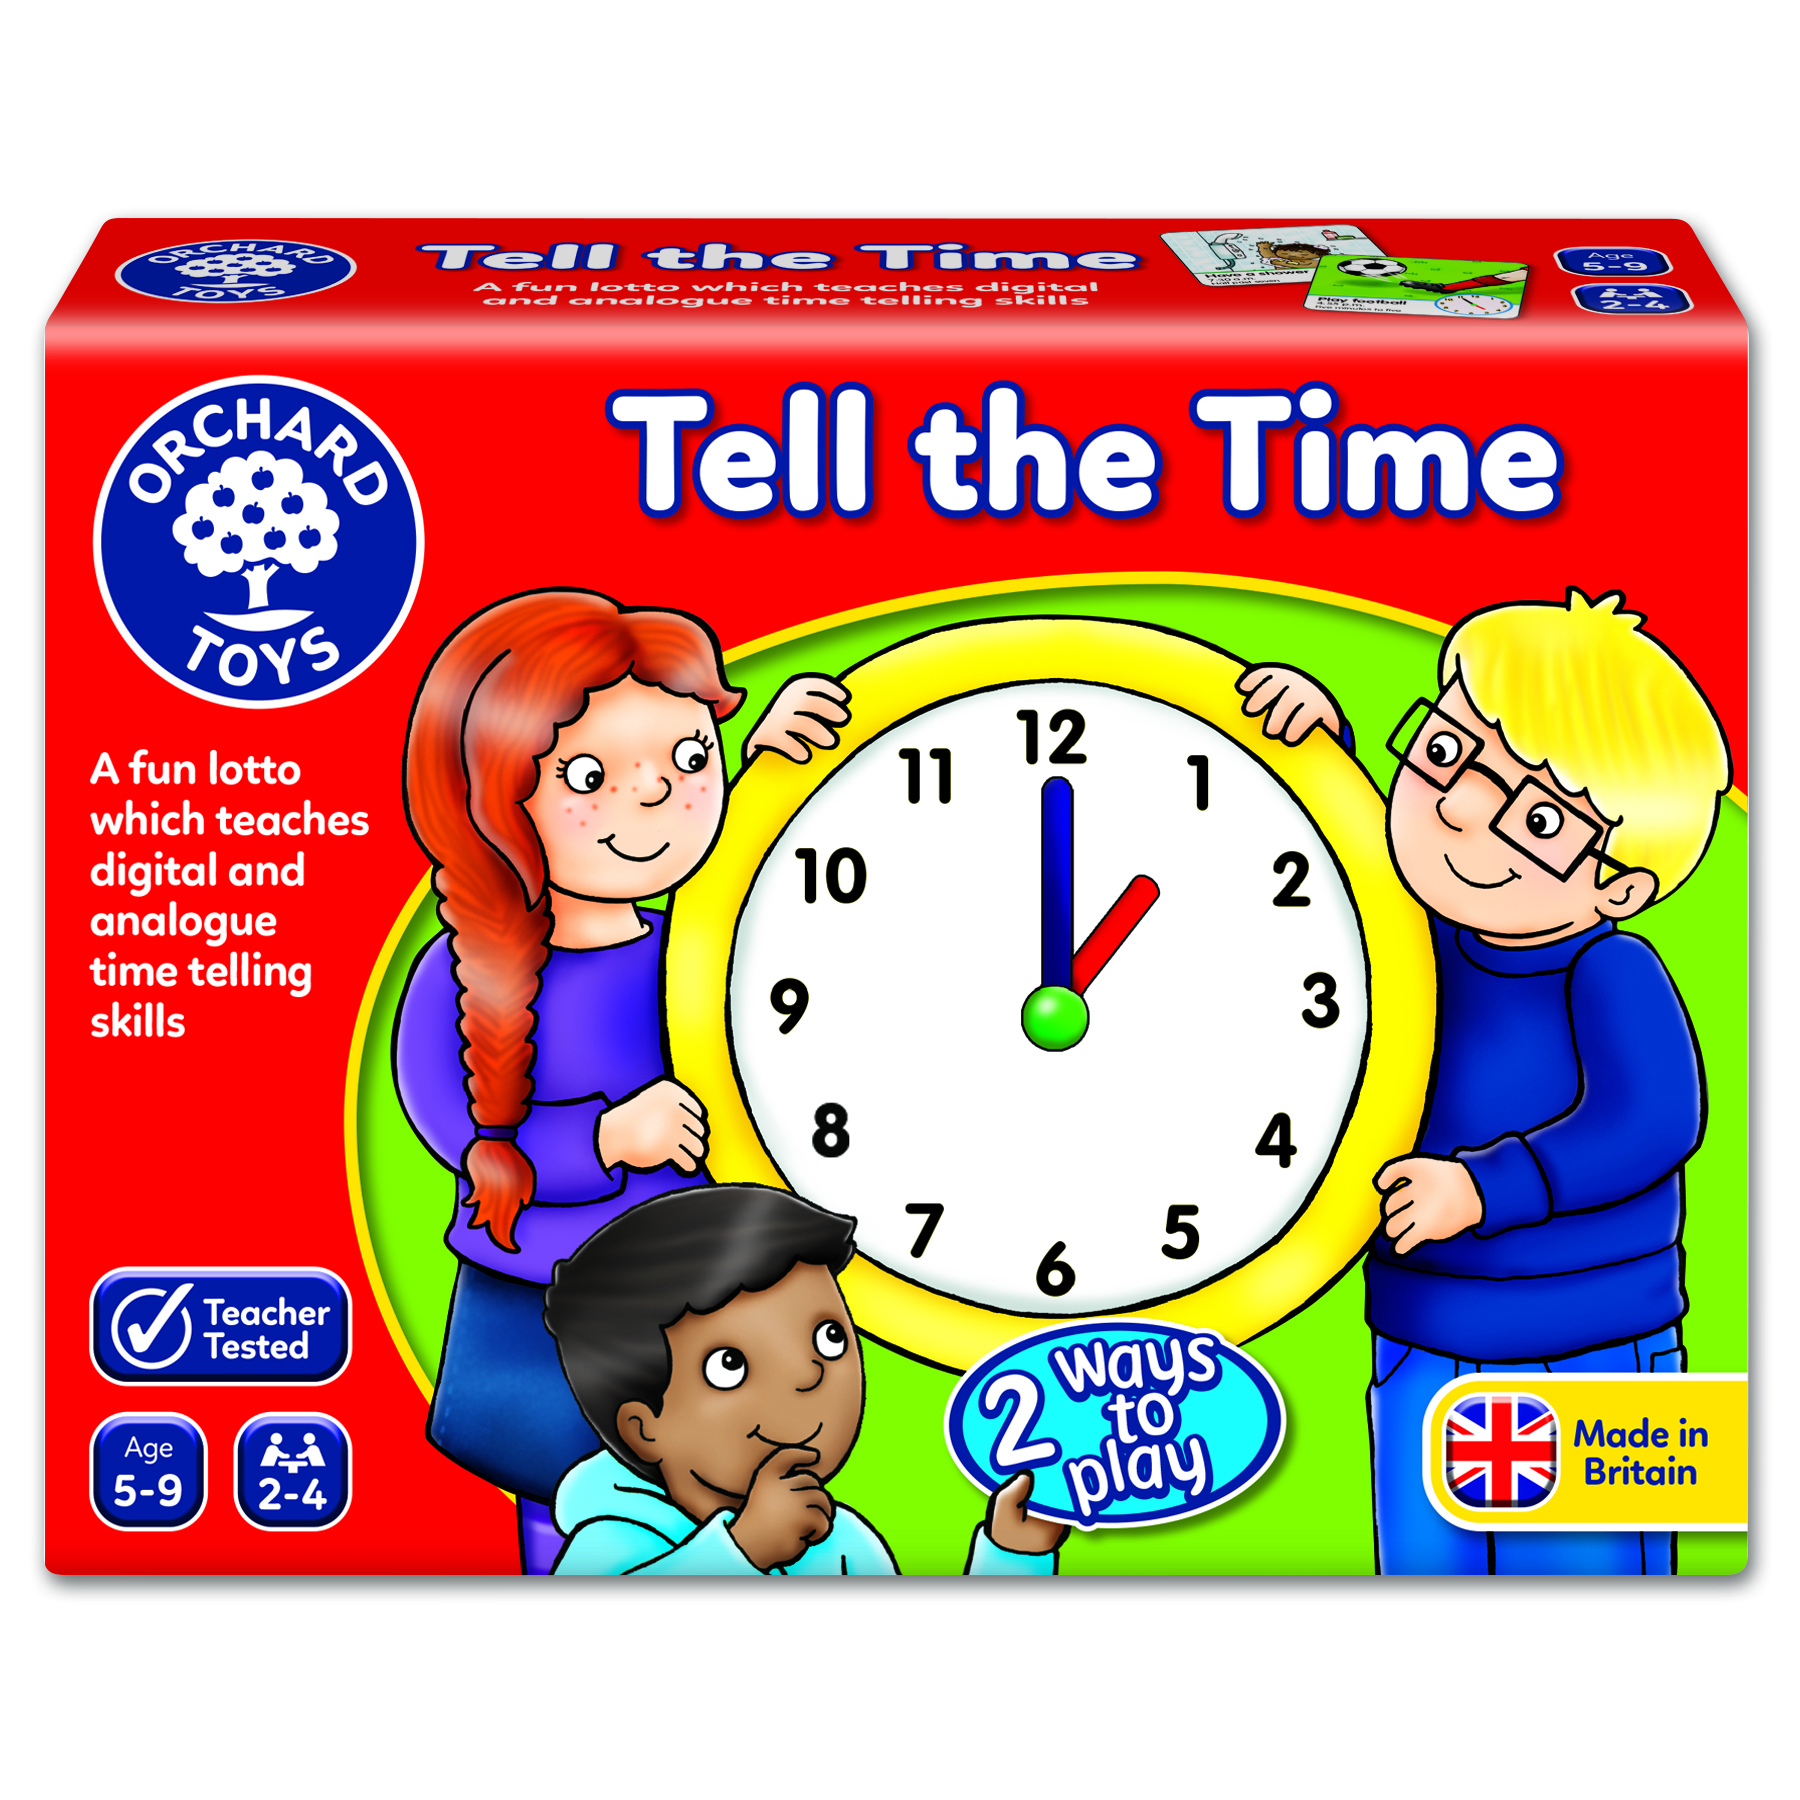 Tell the time Lotto by Orchard Toys 5 ~ 9